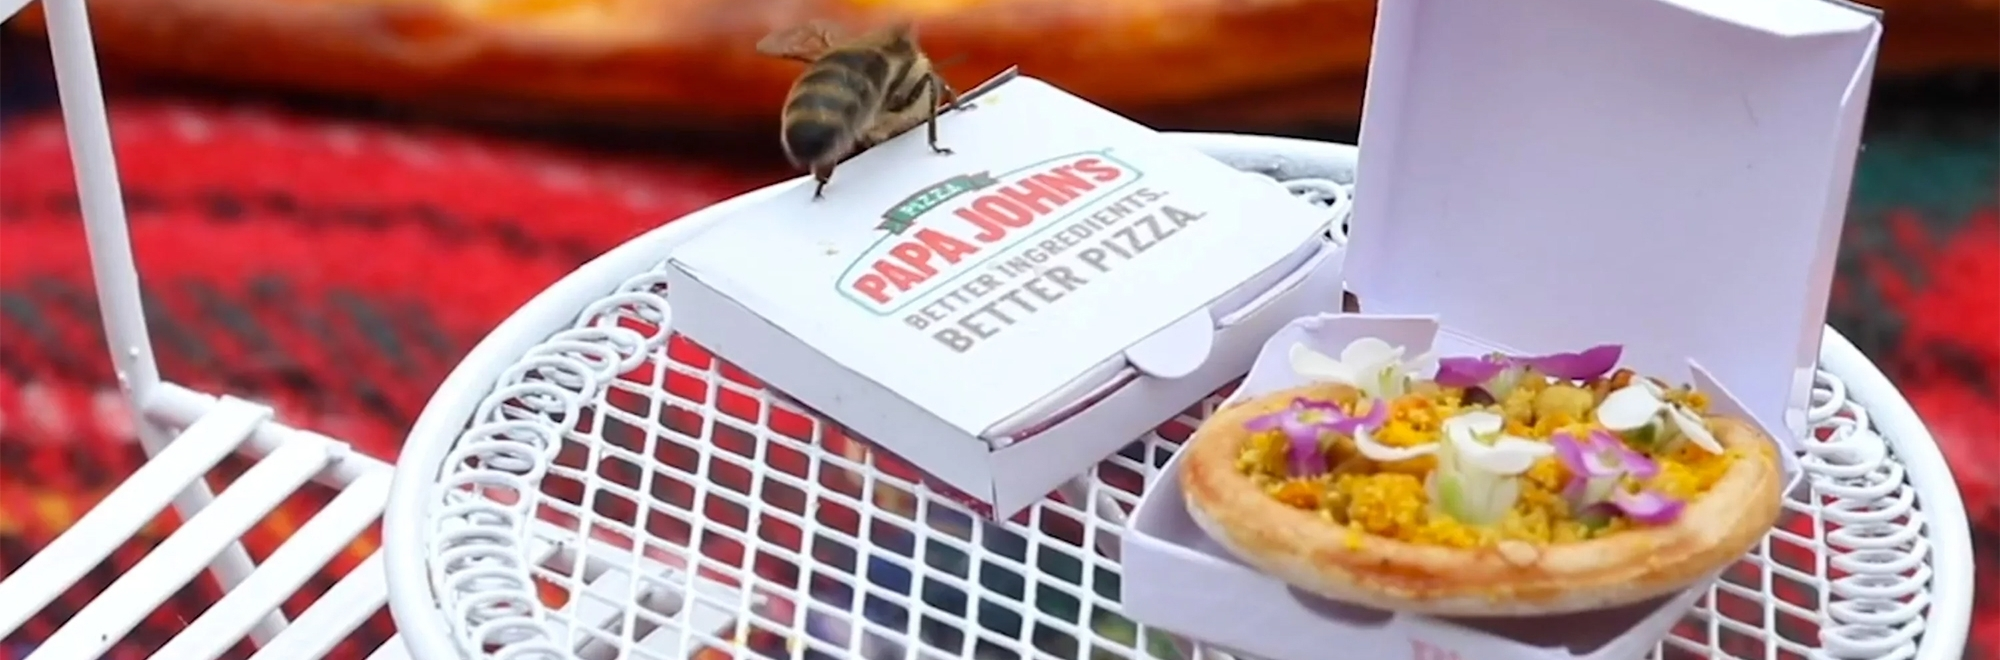 Why Papa John's created a pizza for bees